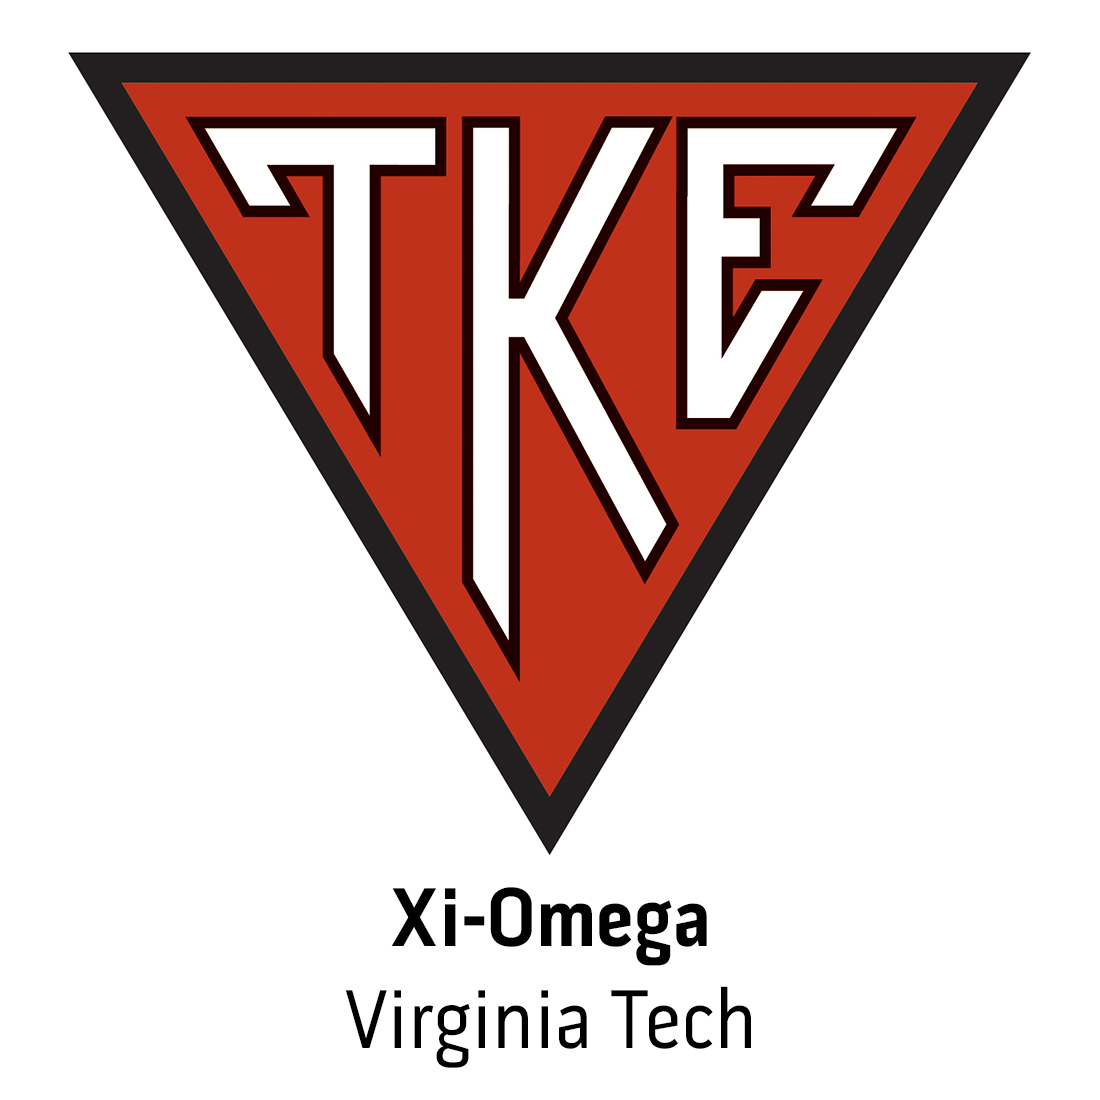 Xi-Omega Chapter at Virginia Polytechnic Institute